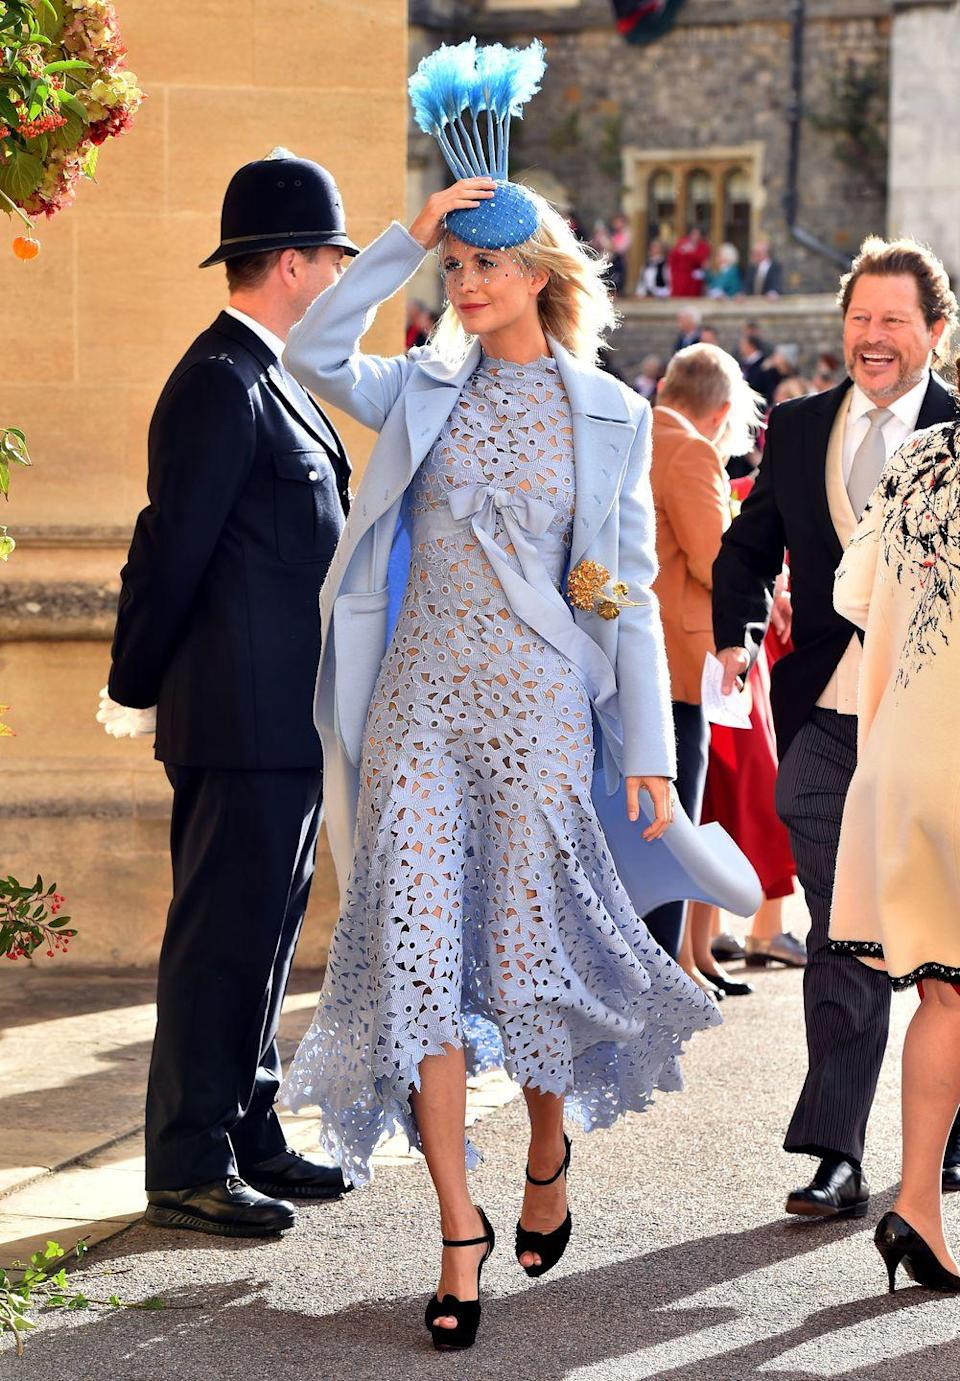 <p>Poppy Delevingne's pastel blue coat and lace dress combo complimented her blonde hair and bright red lip perfectly on Princess Eugenie and Jack Brooksbank's wedding day. </p>